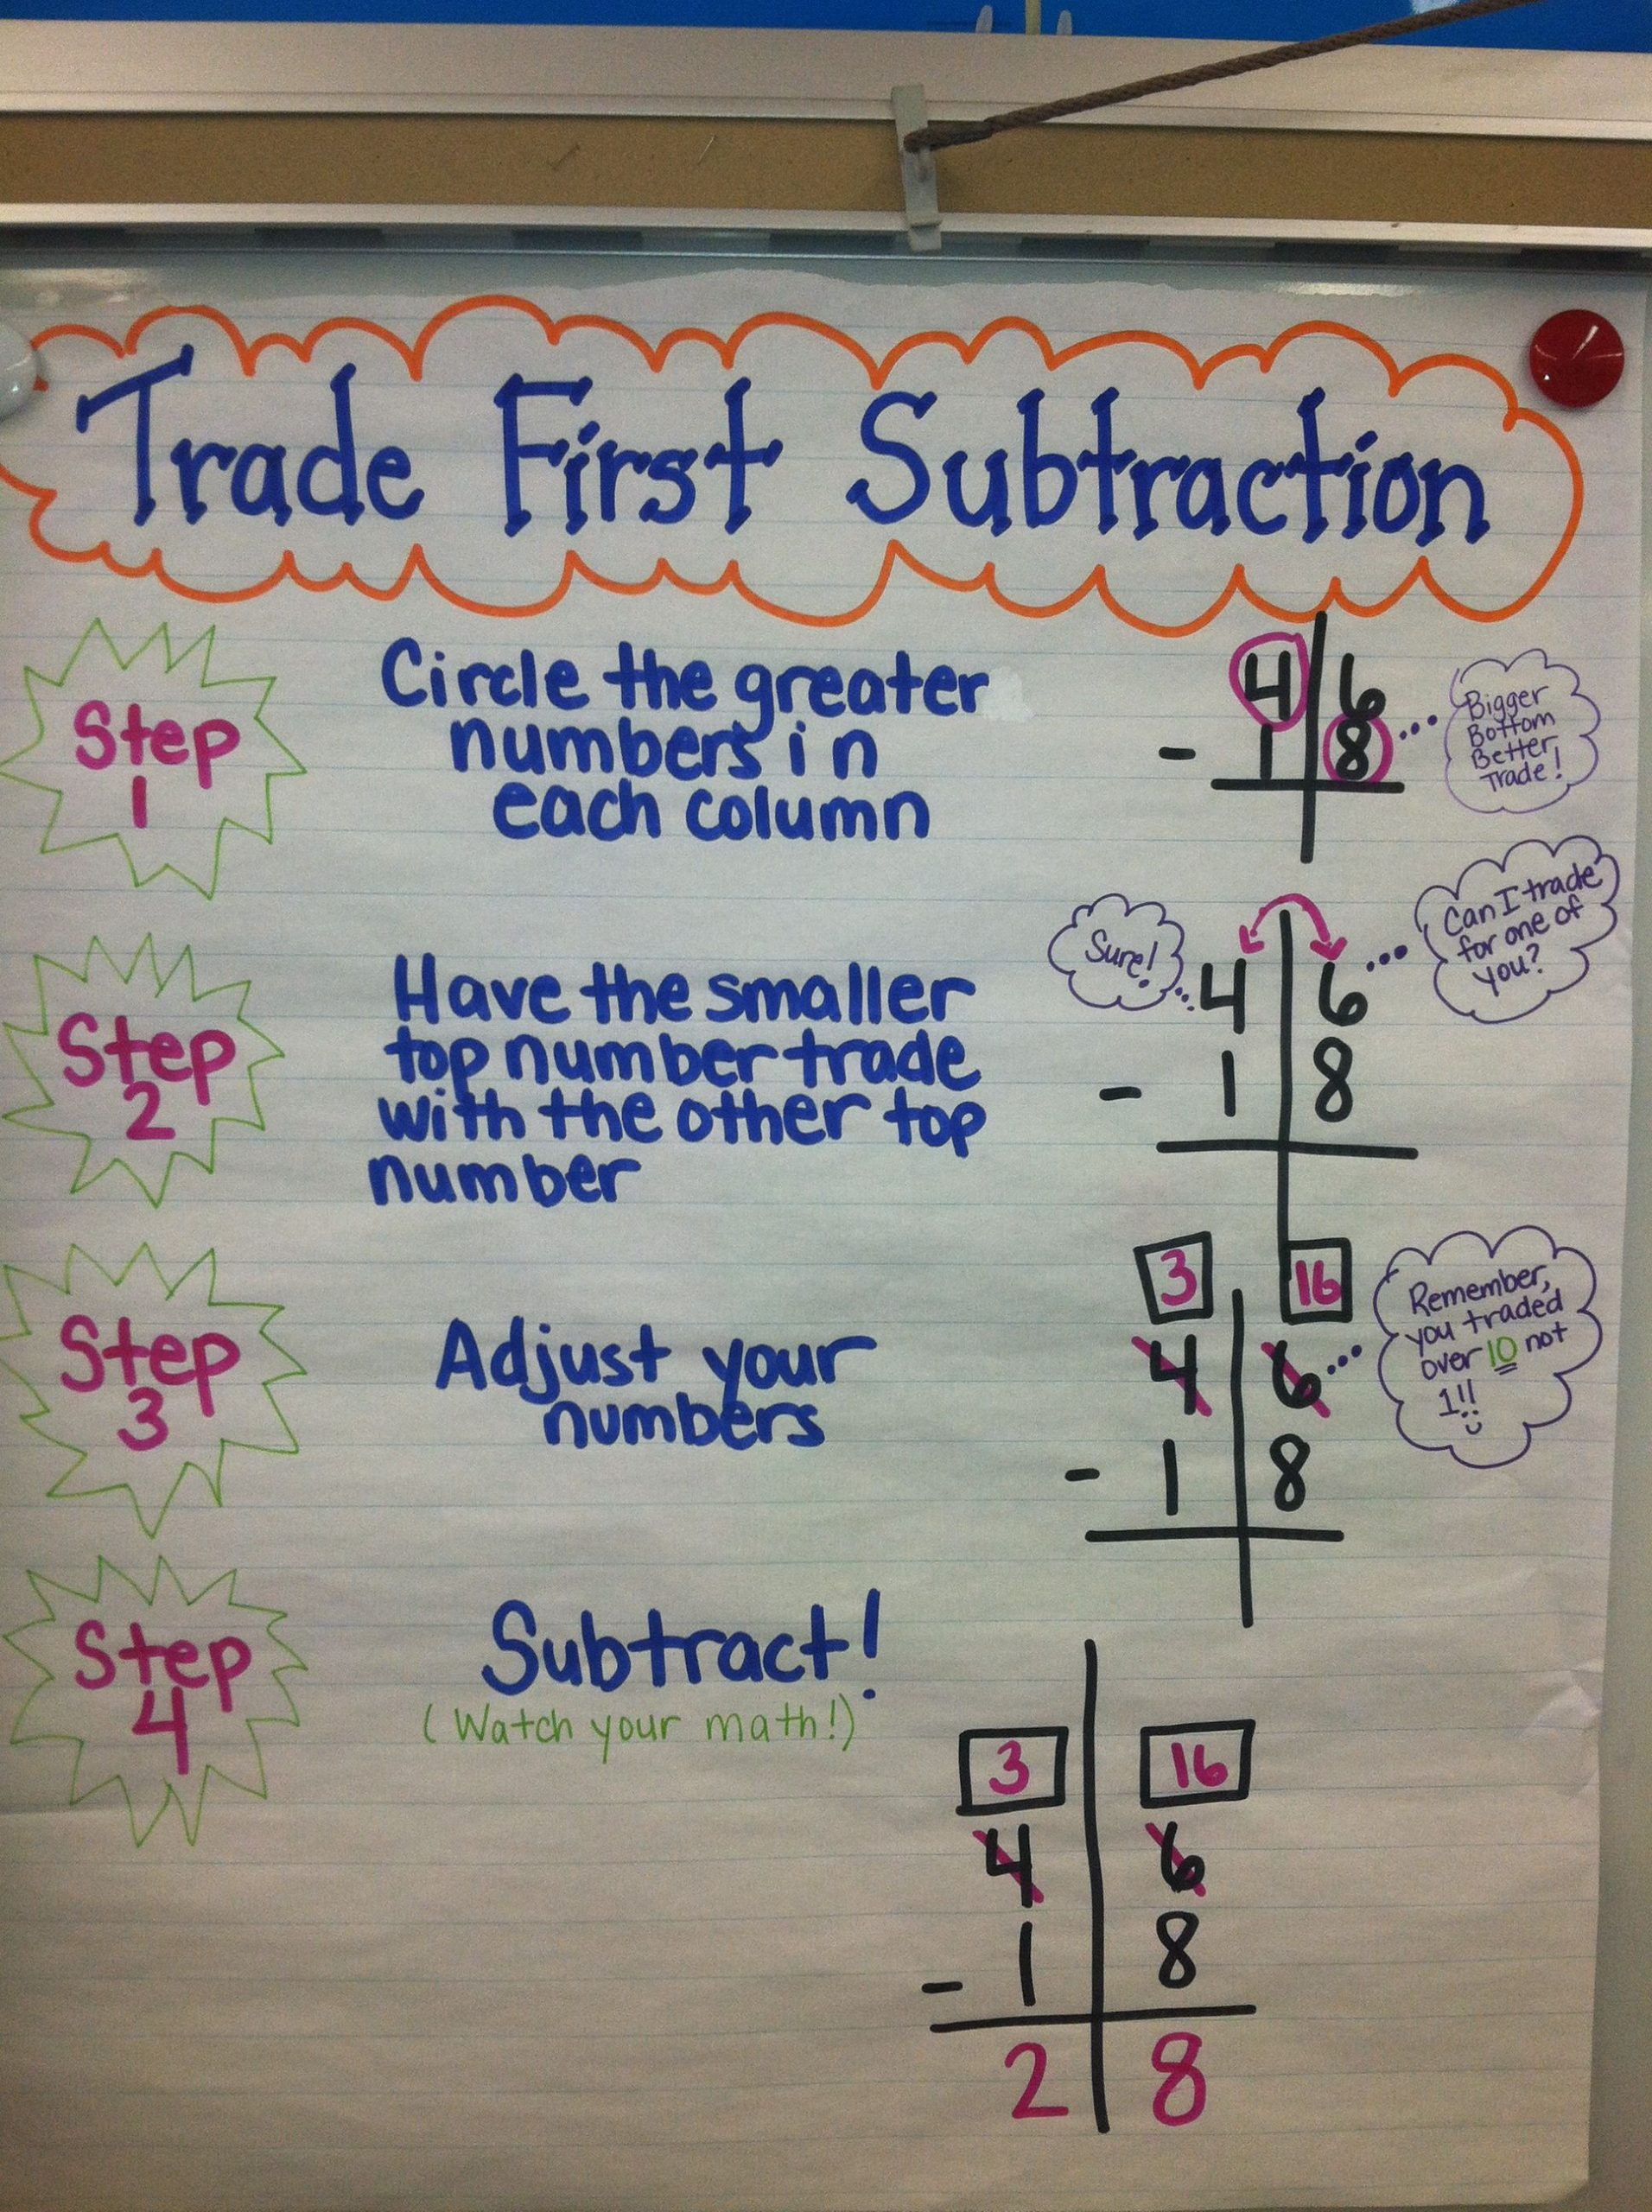 Trade First Subtraction Worksheet